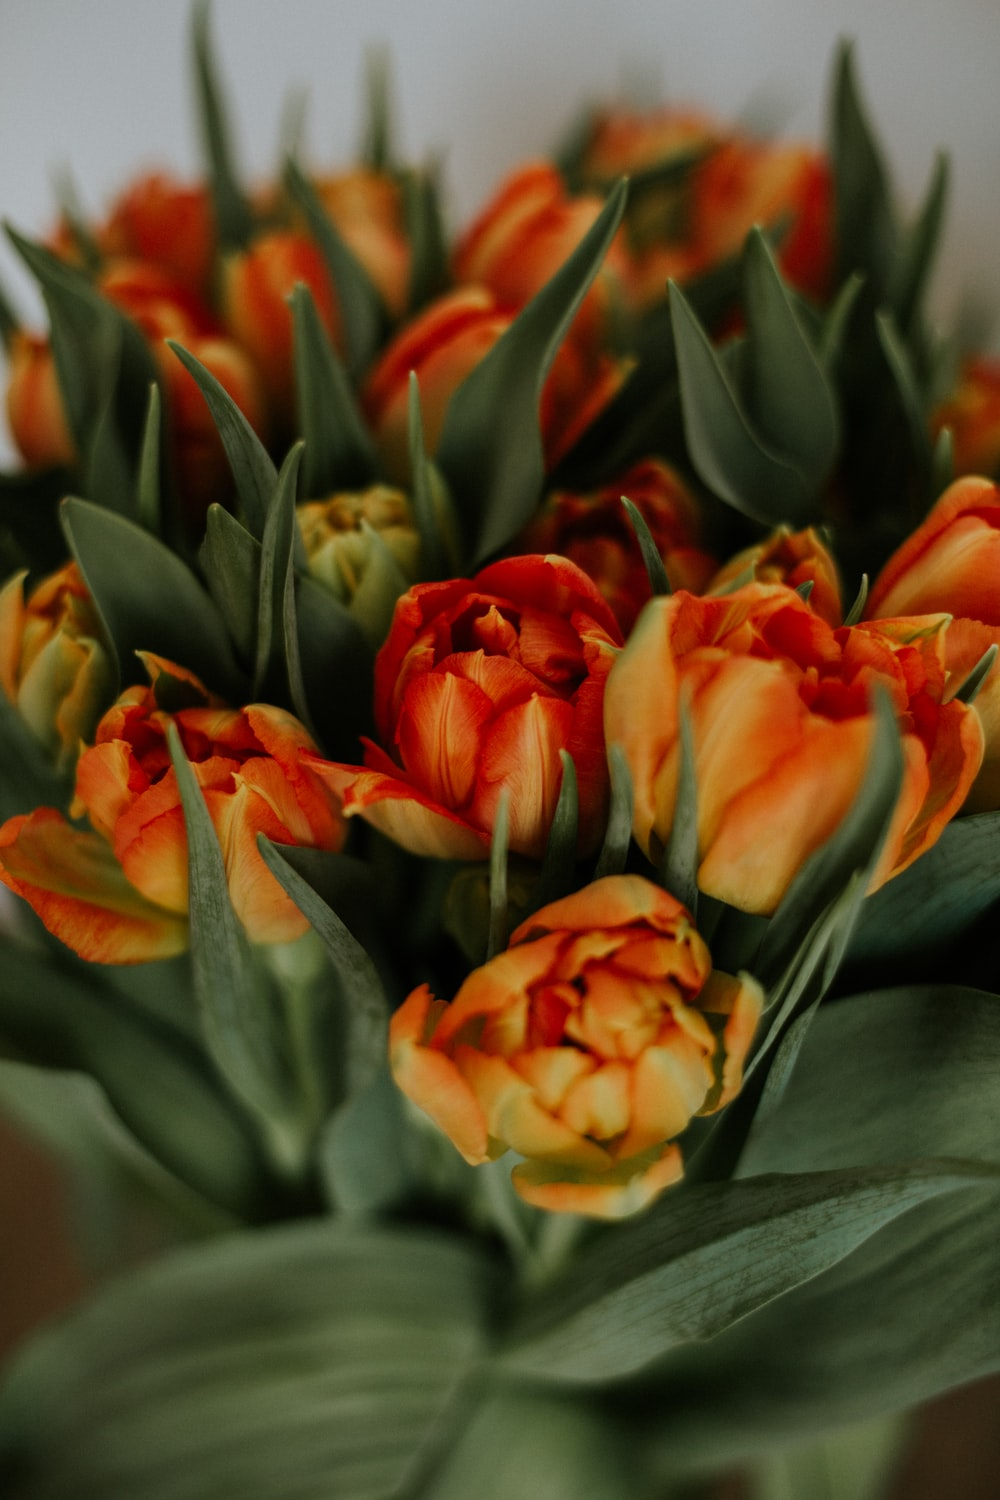 orange and yellow tulips in bloom